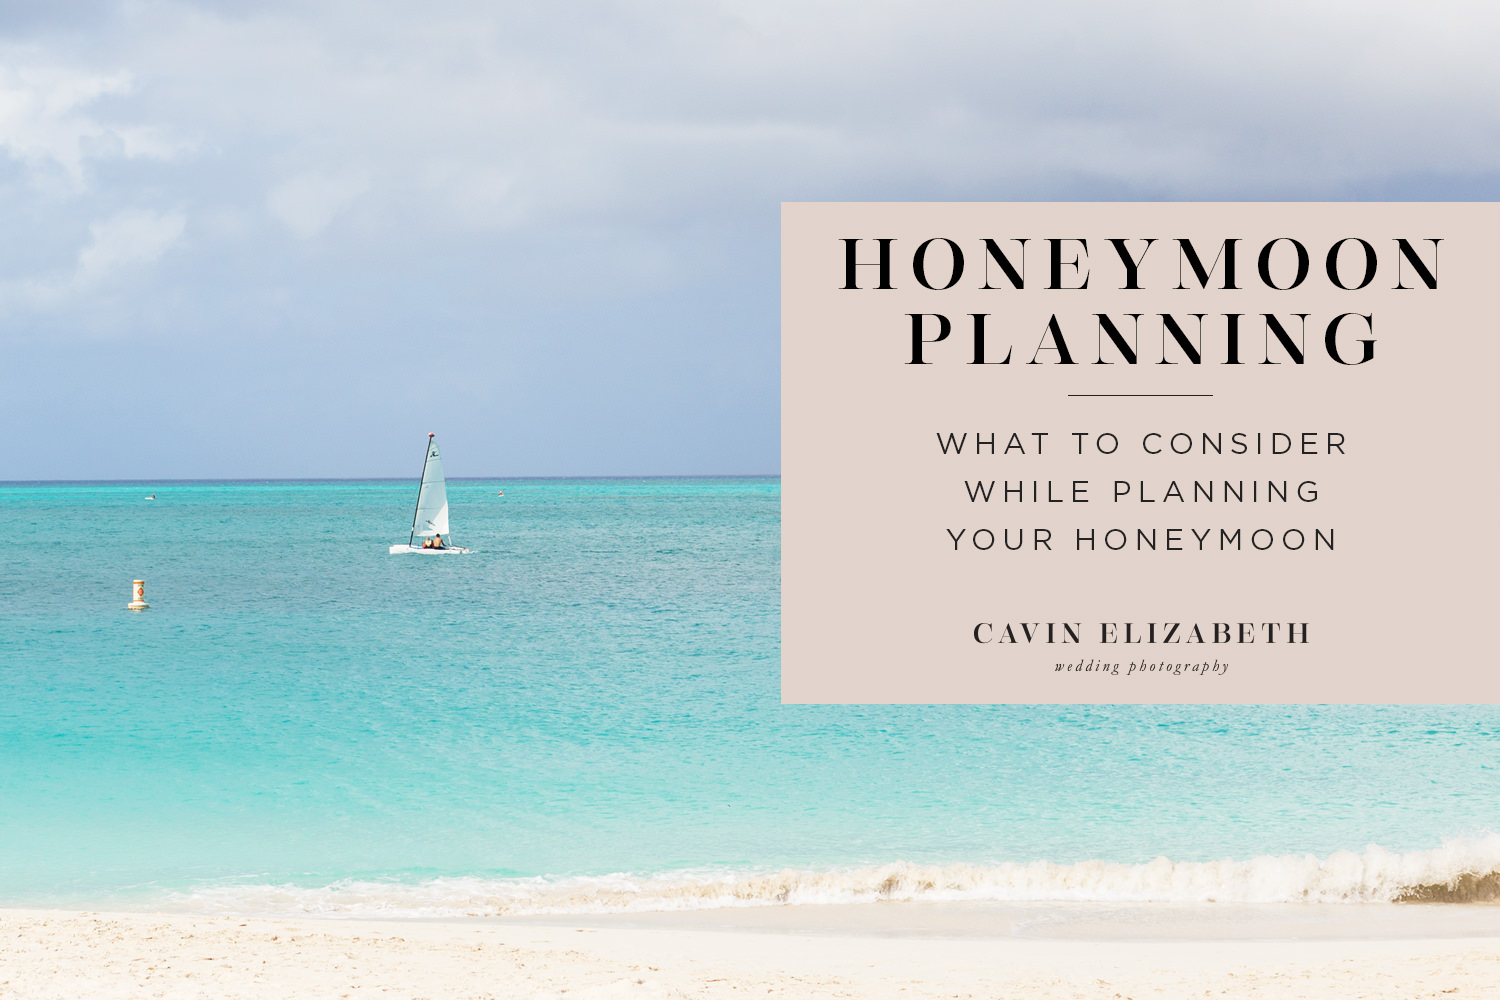 Honeymoon Planning Tips To Consider Before You Book, what to consider for choosing honeymoon dates and locations